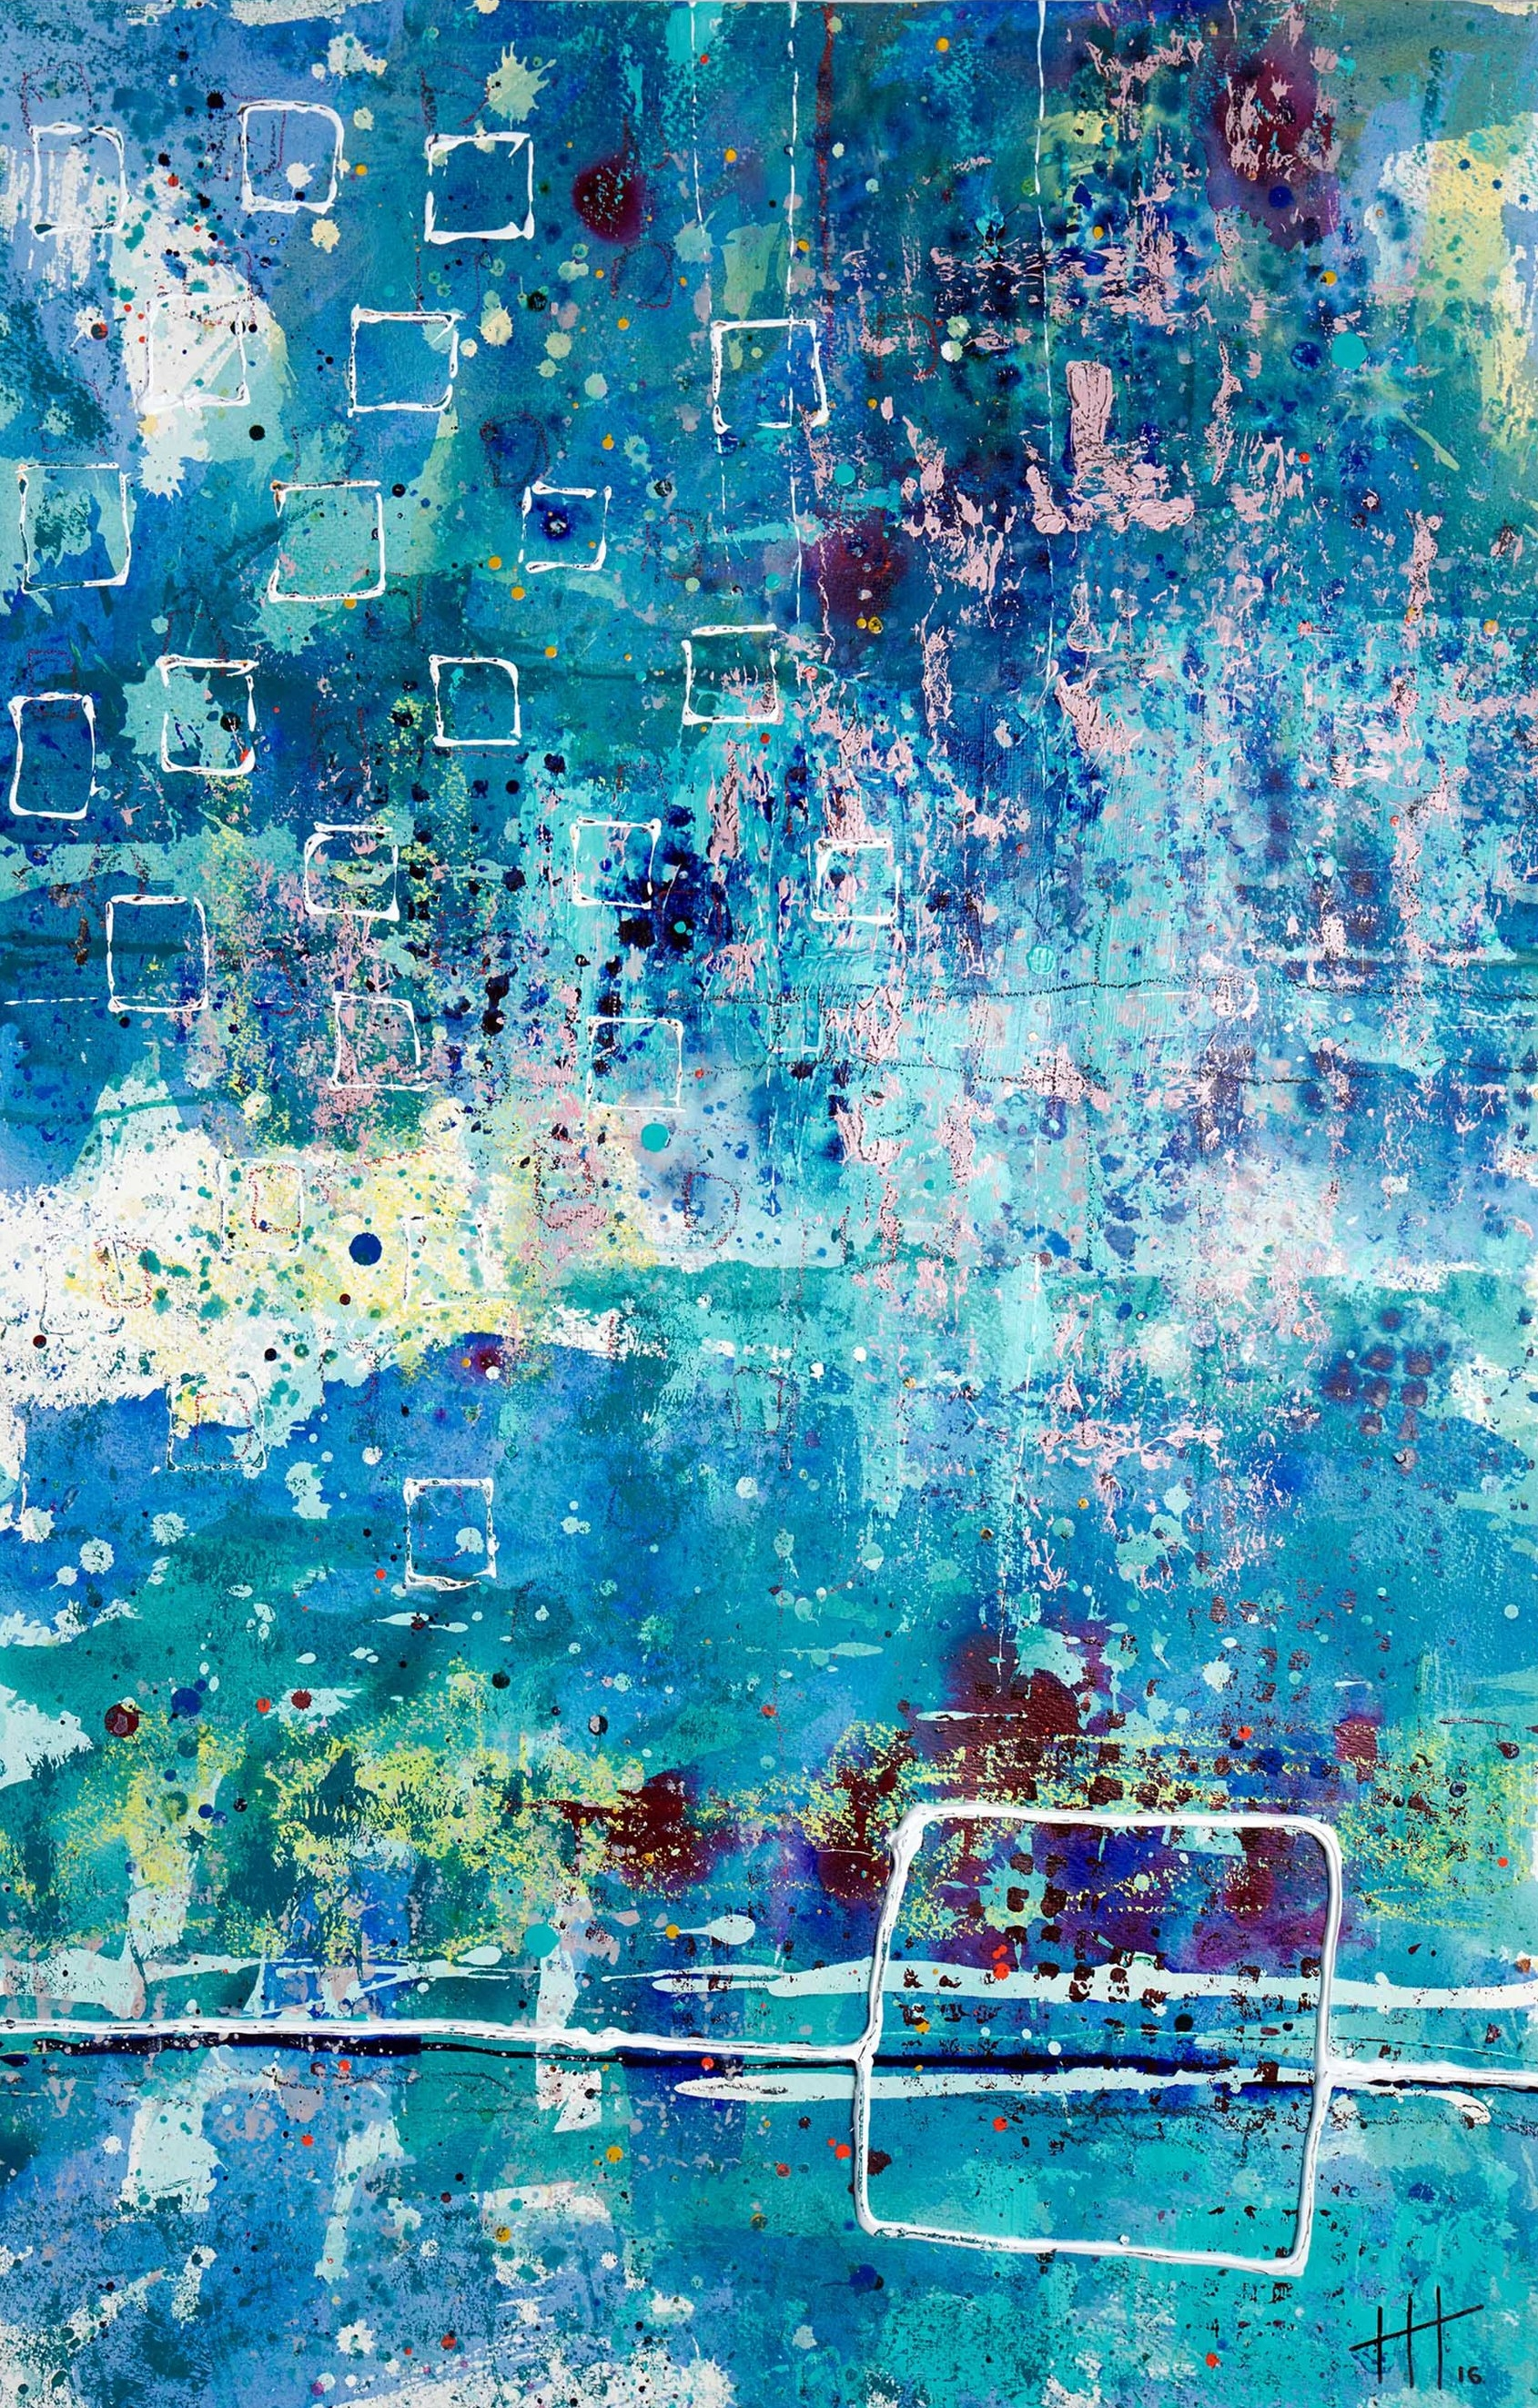 'Swimmers in The River' Acrylic & Mixed Media / 129cm x 93cm (framed) SOLD